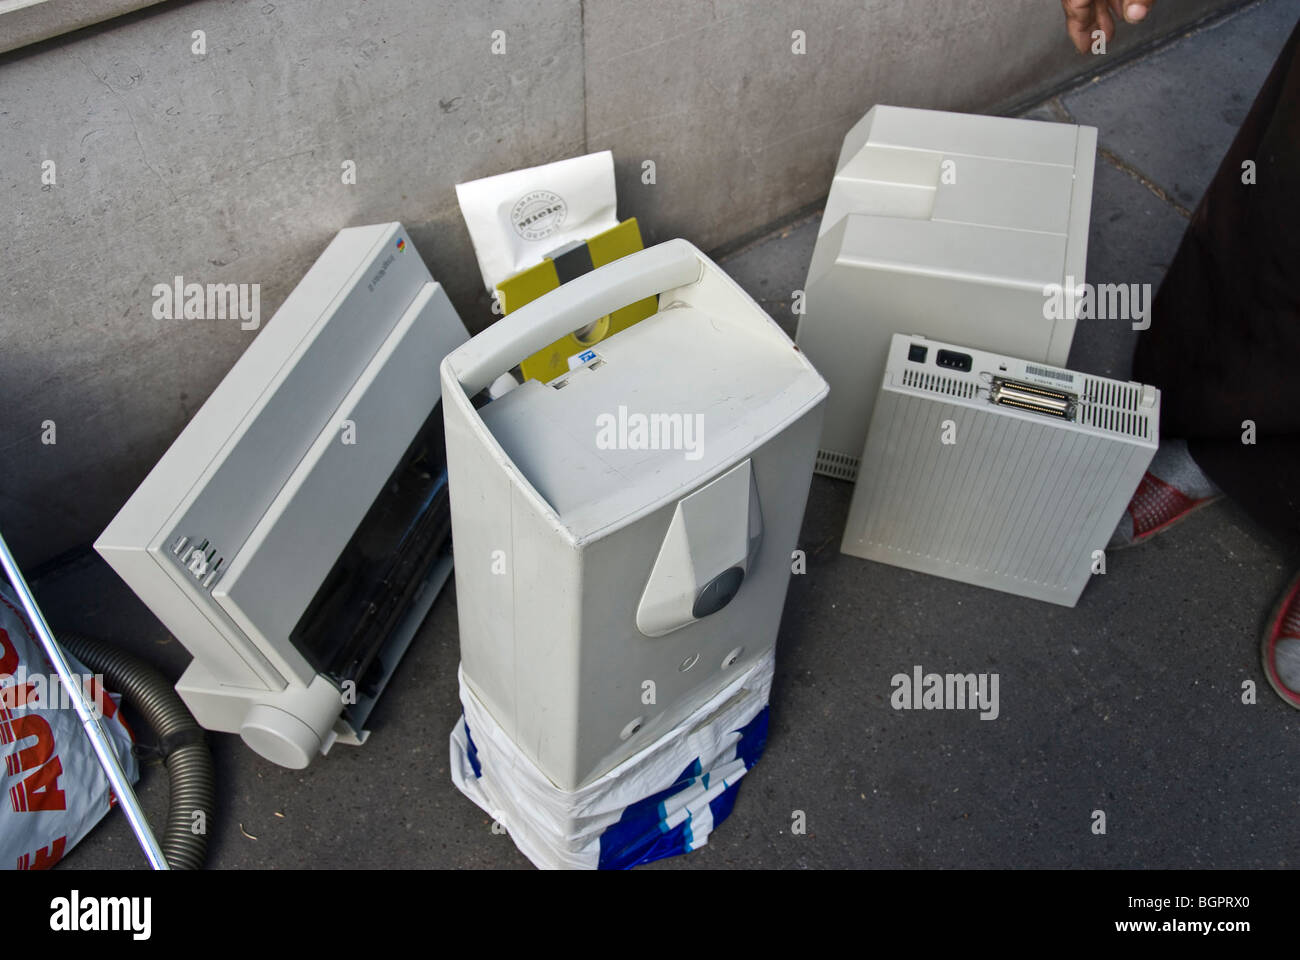 Environment, MAC Computer Being Thrown out for Garbage on Street - Stock Image